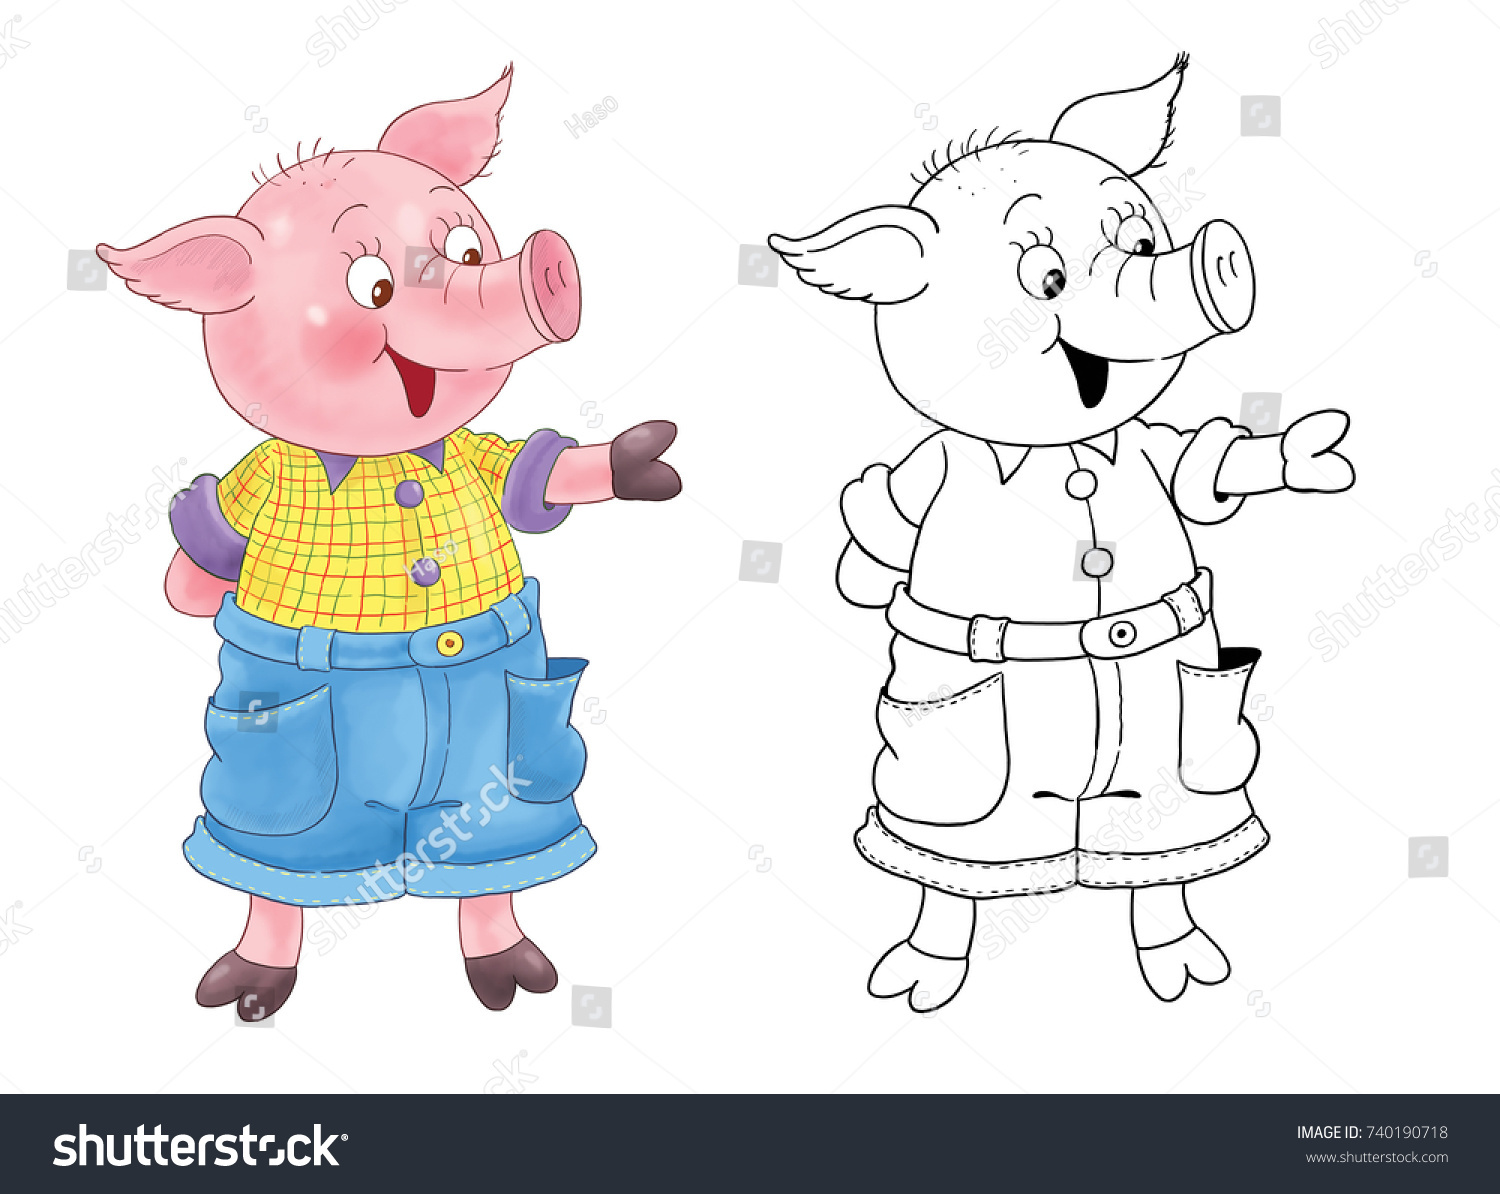 Three little pigs fairy tale coloring book coloring page illustration for children cute and funny cartoon characters character design illustration